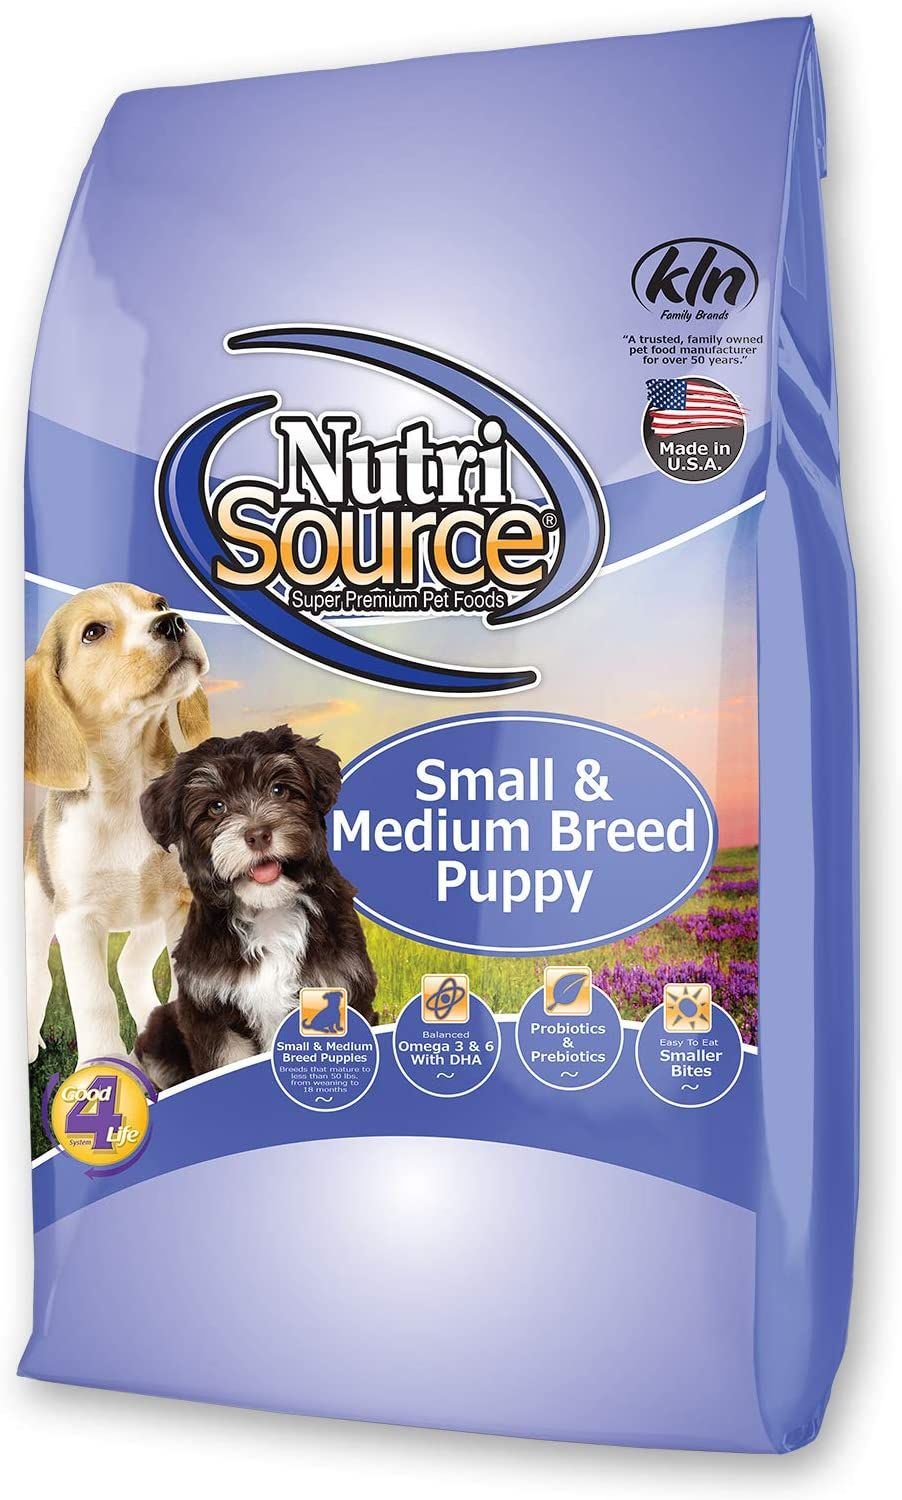 Nutrisource SmMed Breed Dry Puppy FoodLb Pet Supplies